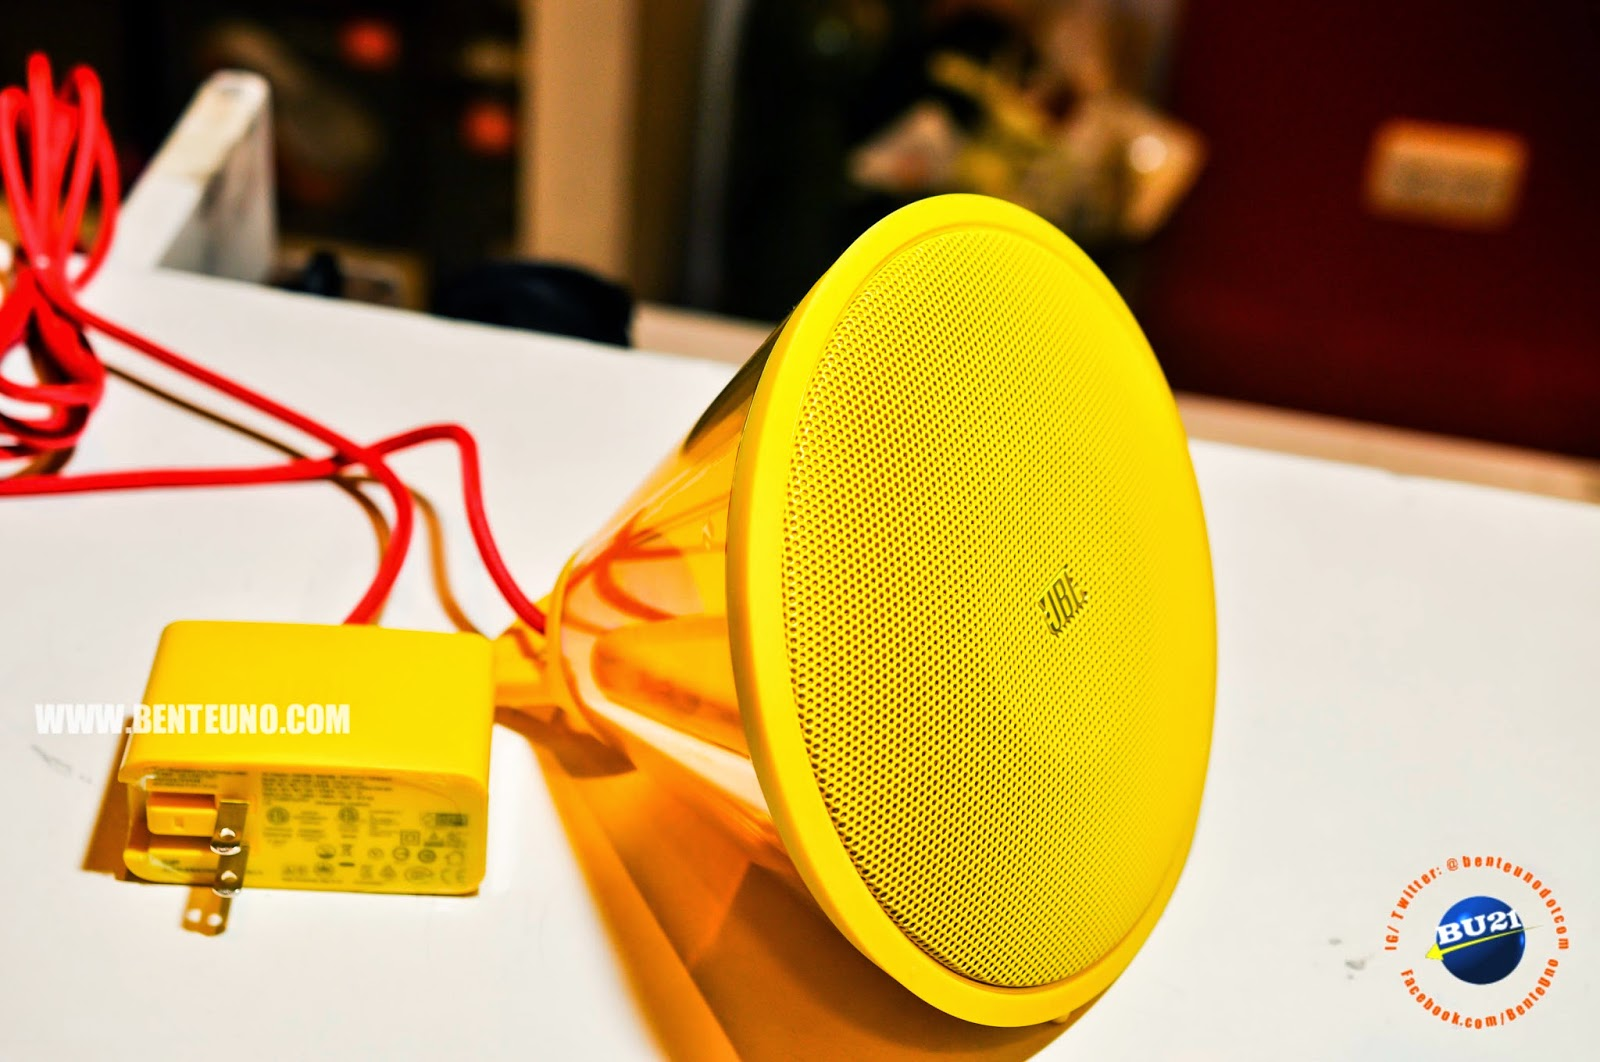 JBL Spark Yellow. Fires up the sound in your room in seconds